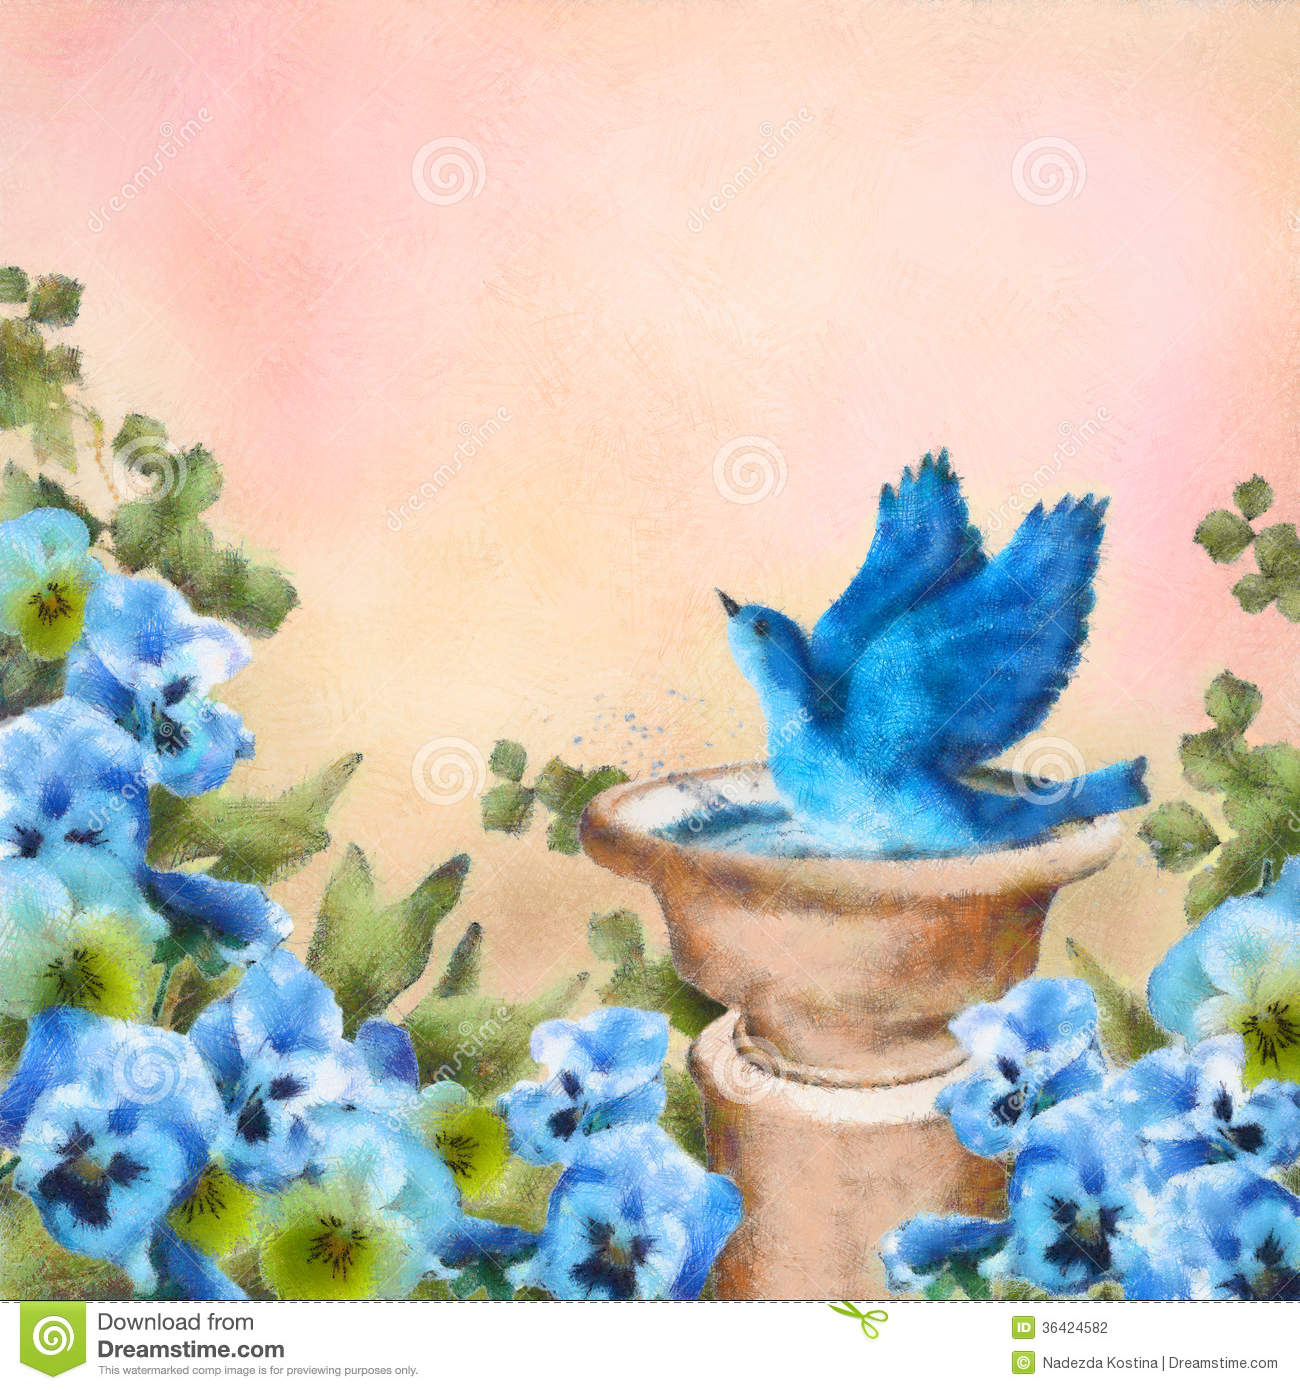 Romantic Pastel And Watercolor Drawing Garden Scene Bluebird Splashing In A Bird Bath Among Beautiful Pansy Flowers Concept Design With Symbol Of